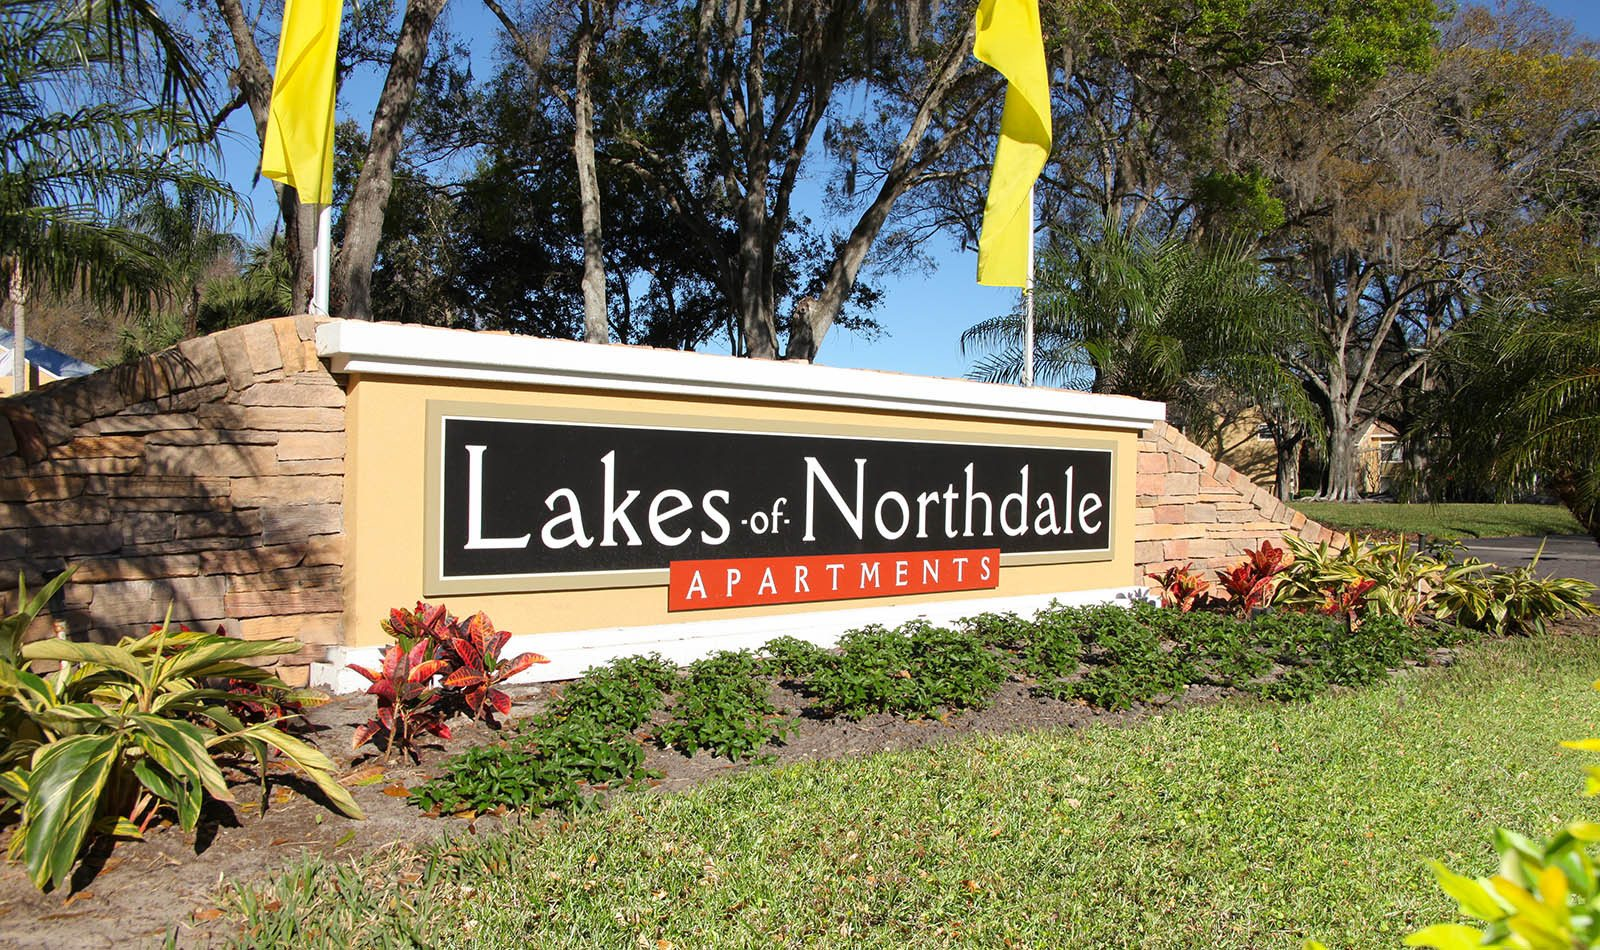 Signage at Lakes of Northdale Apartments in Tampa